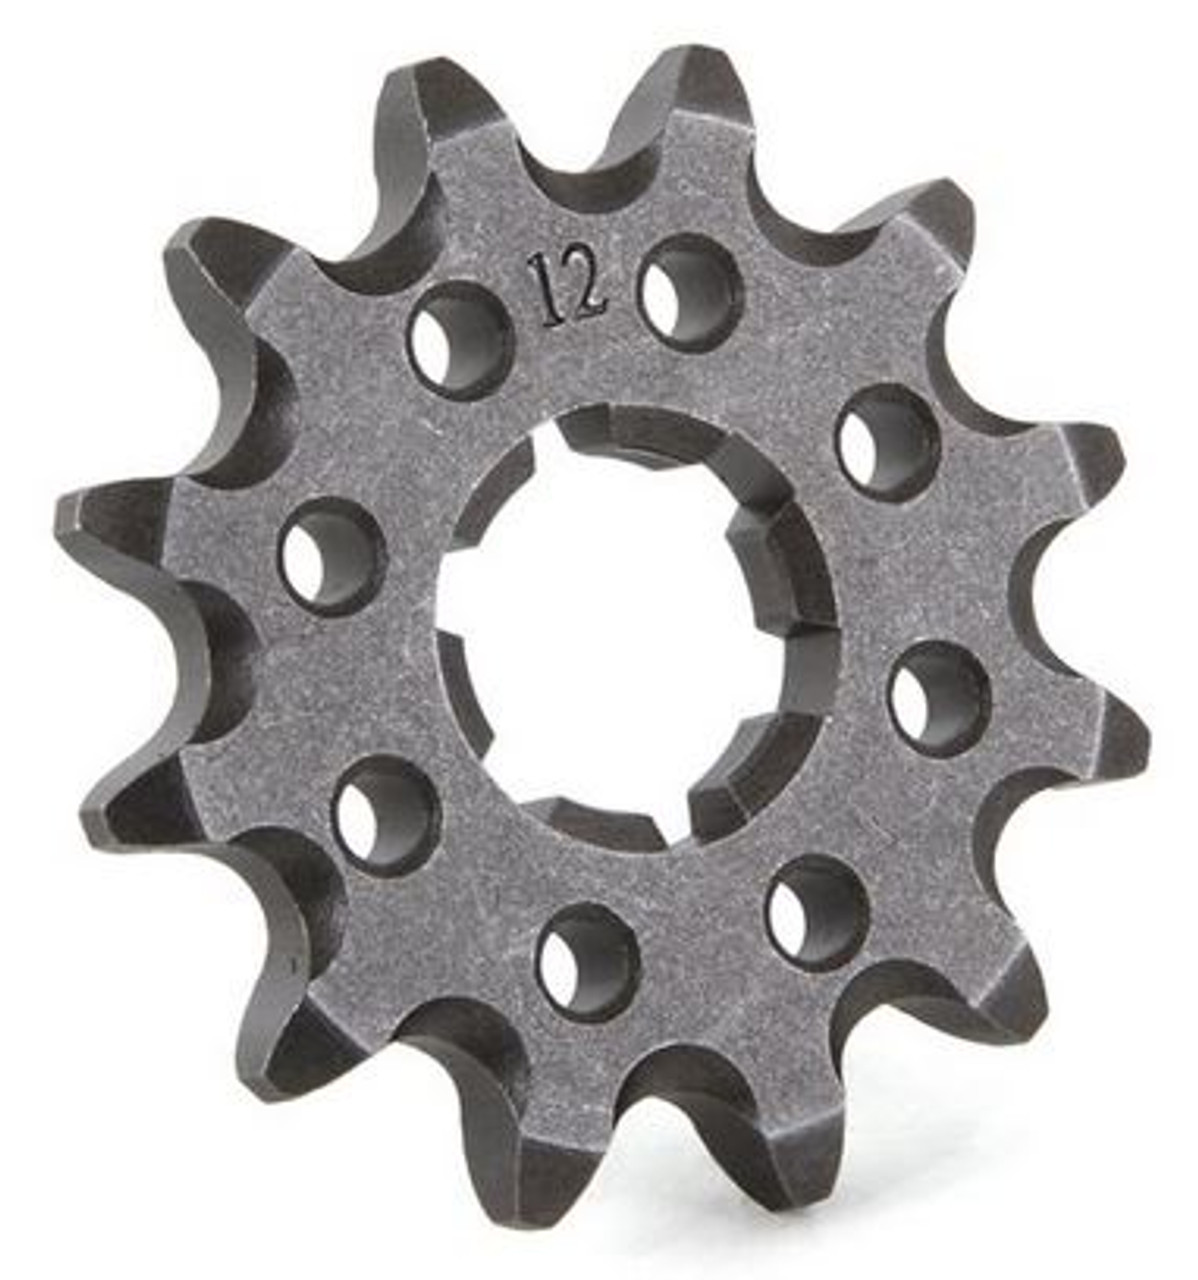 KTM 450 EXC F 2003-2018 FRONT SPROCKET 13 14 15 TOOTH PROX